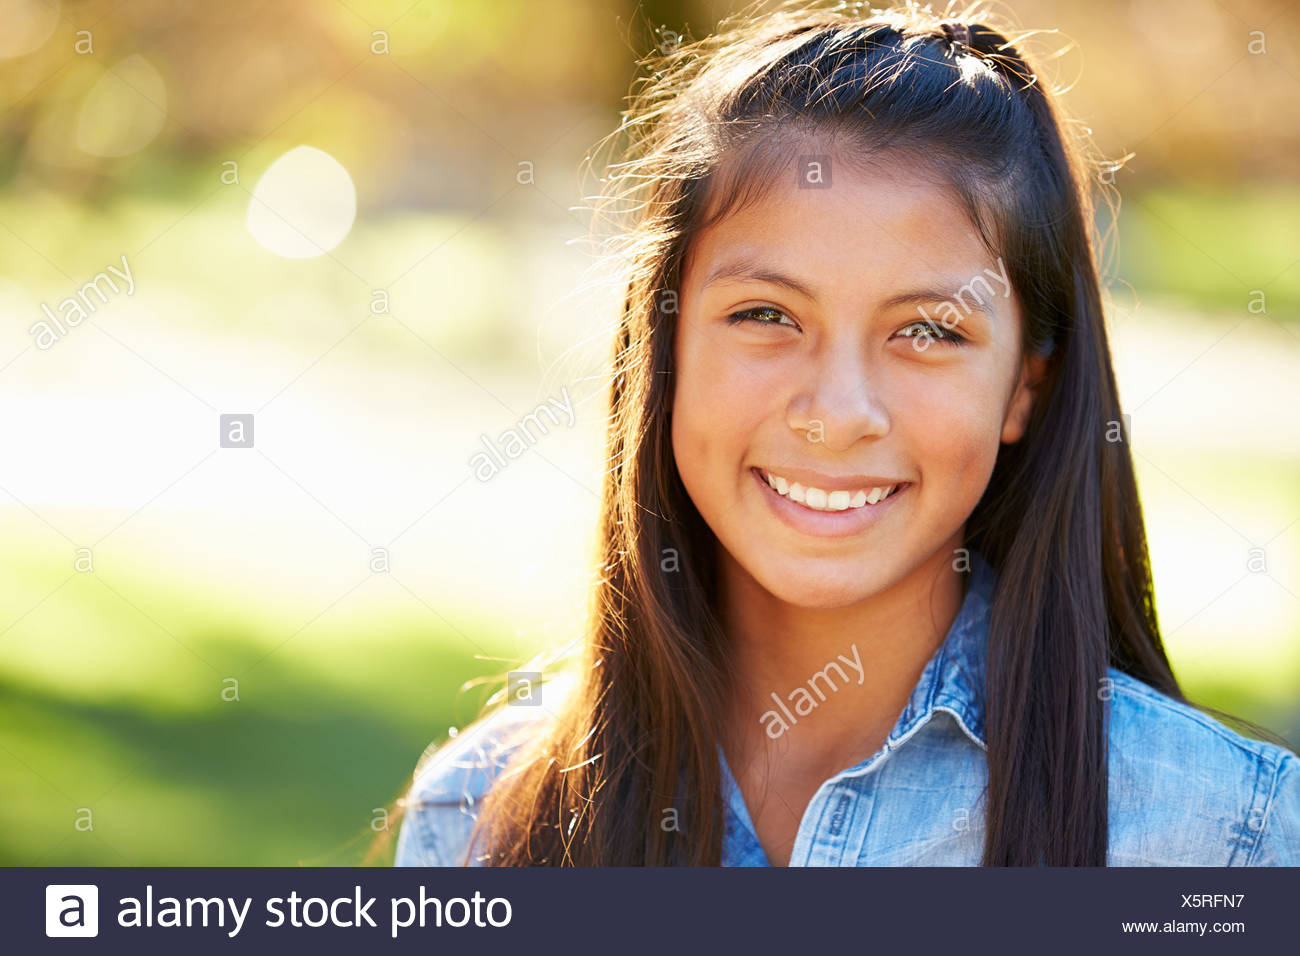 Portrait of Young Girl in Countryside Photo Stock